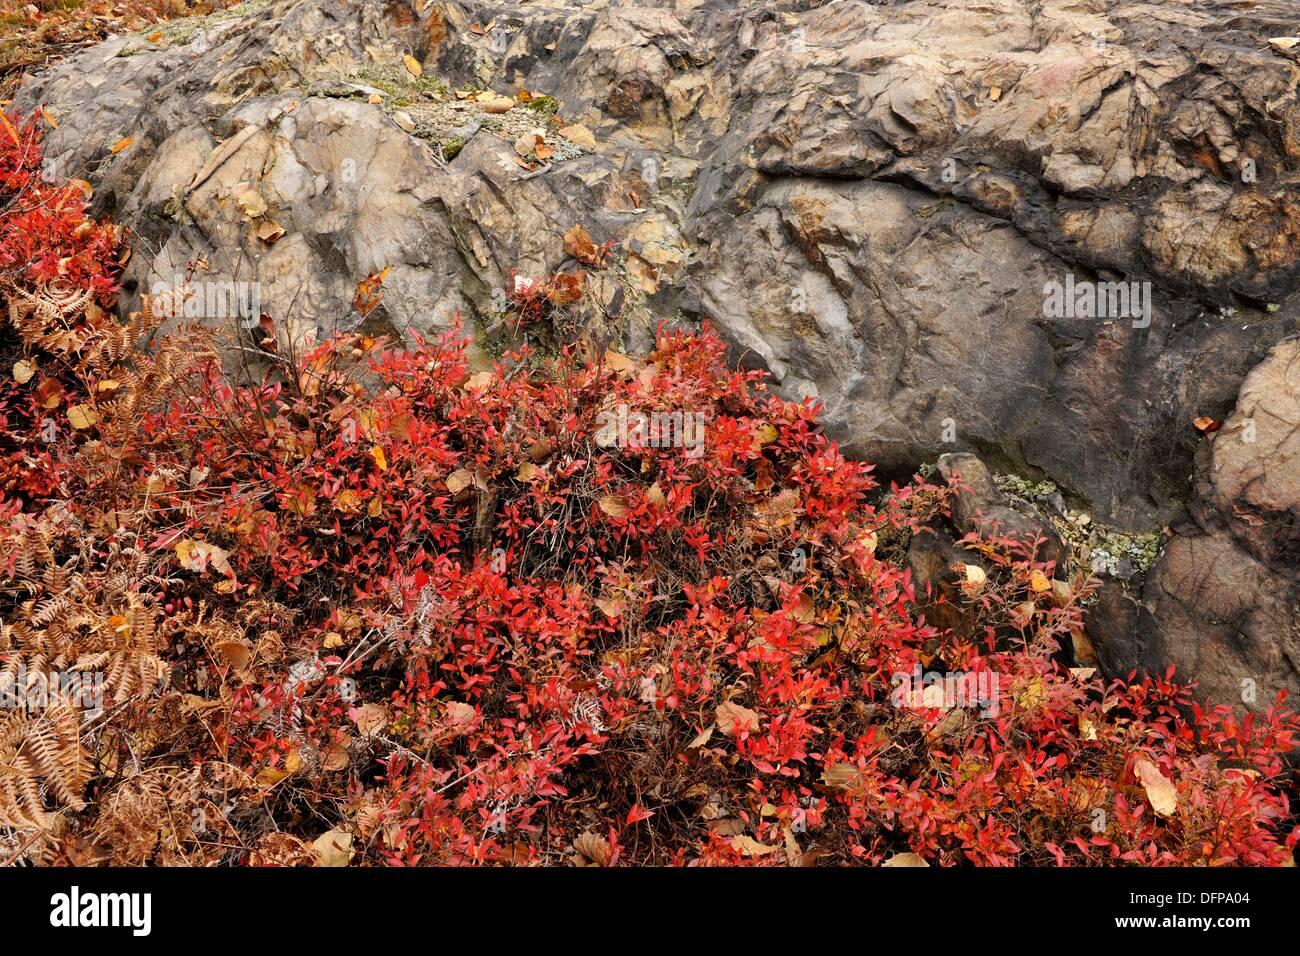 Lowbush Blueberry Vaccinium angustifolium autumn leaves Greater Sudbury Ontario - Stock Image